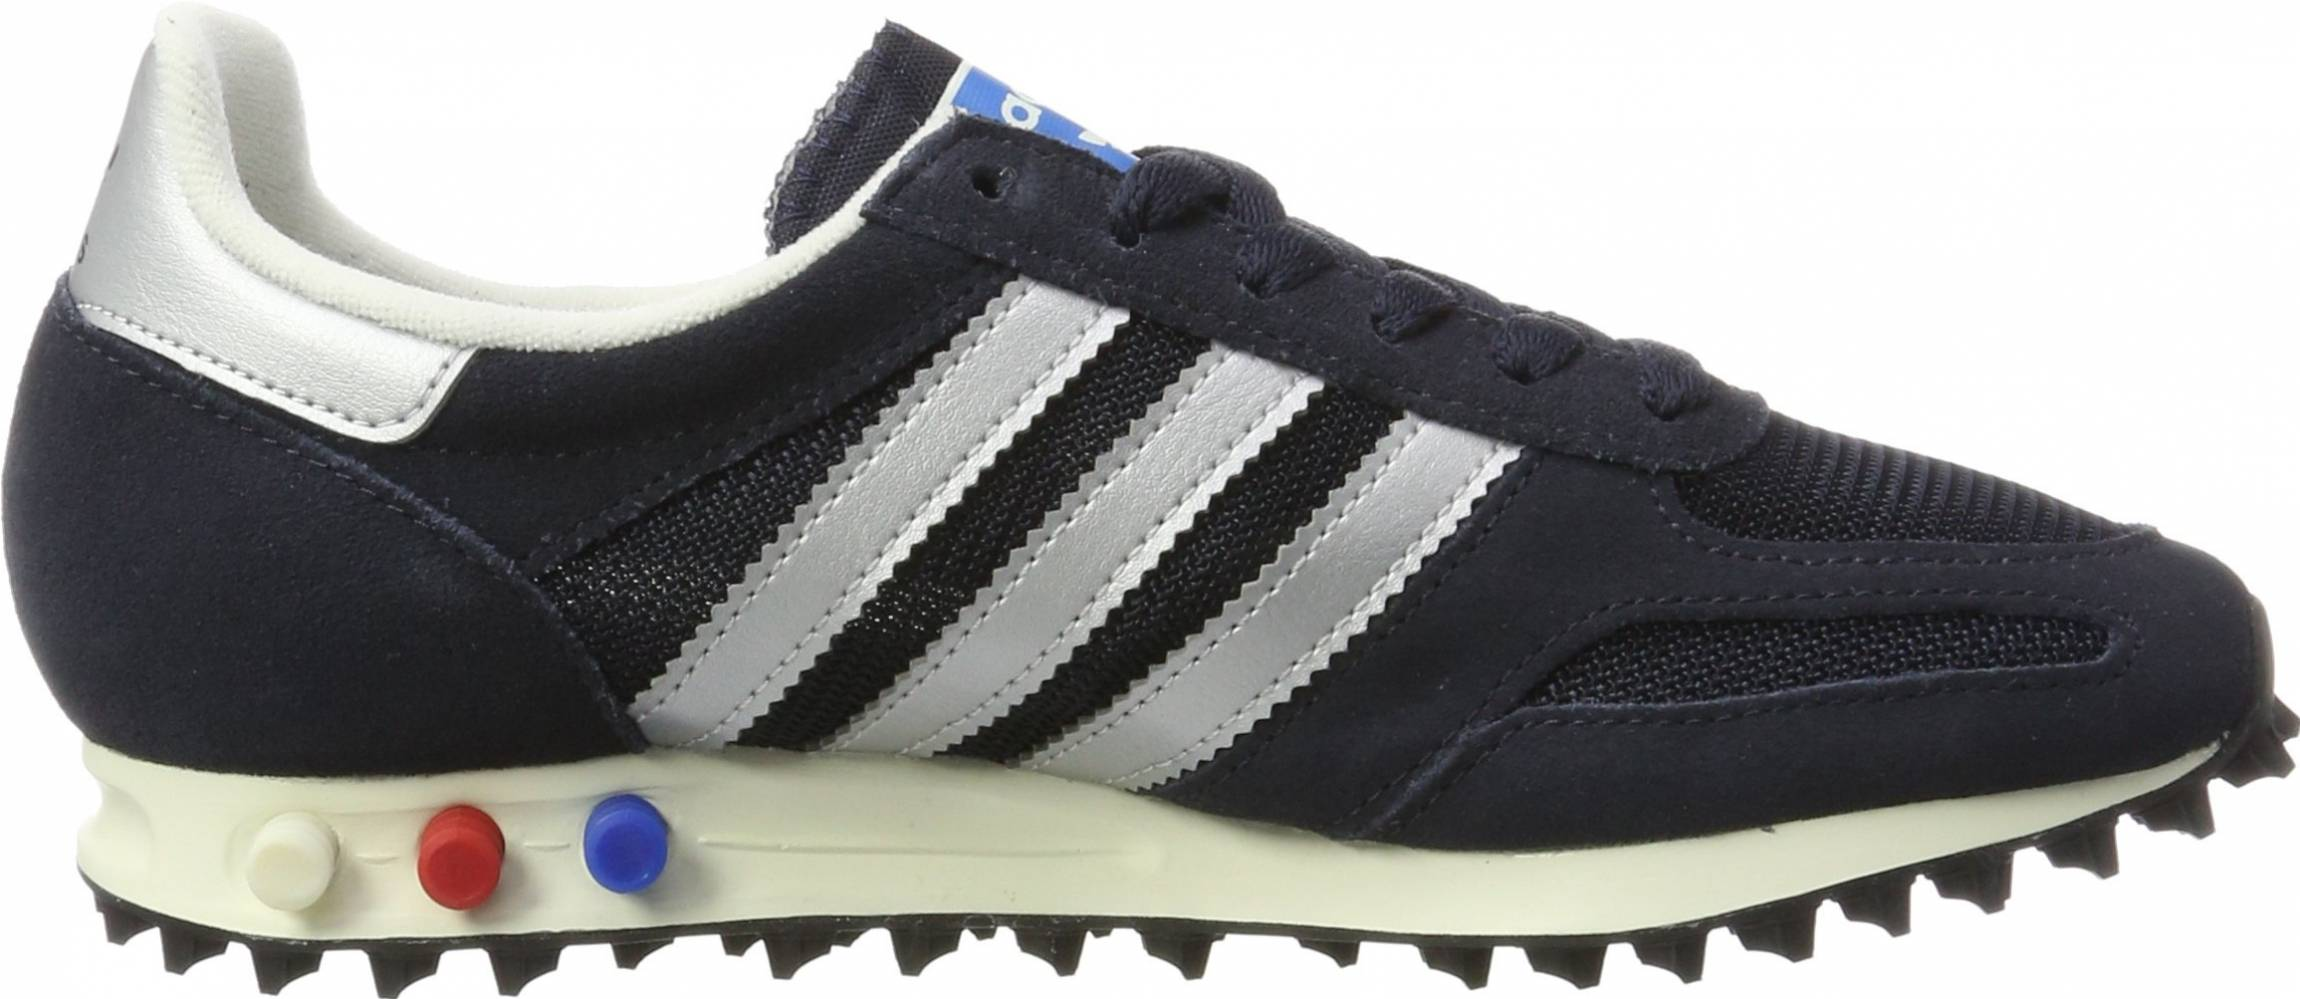 Príncipe heroína tira  11 Reasons to/NOT to Buy Adidas LA Trainer OG (Jan 2021) | RunRepeat